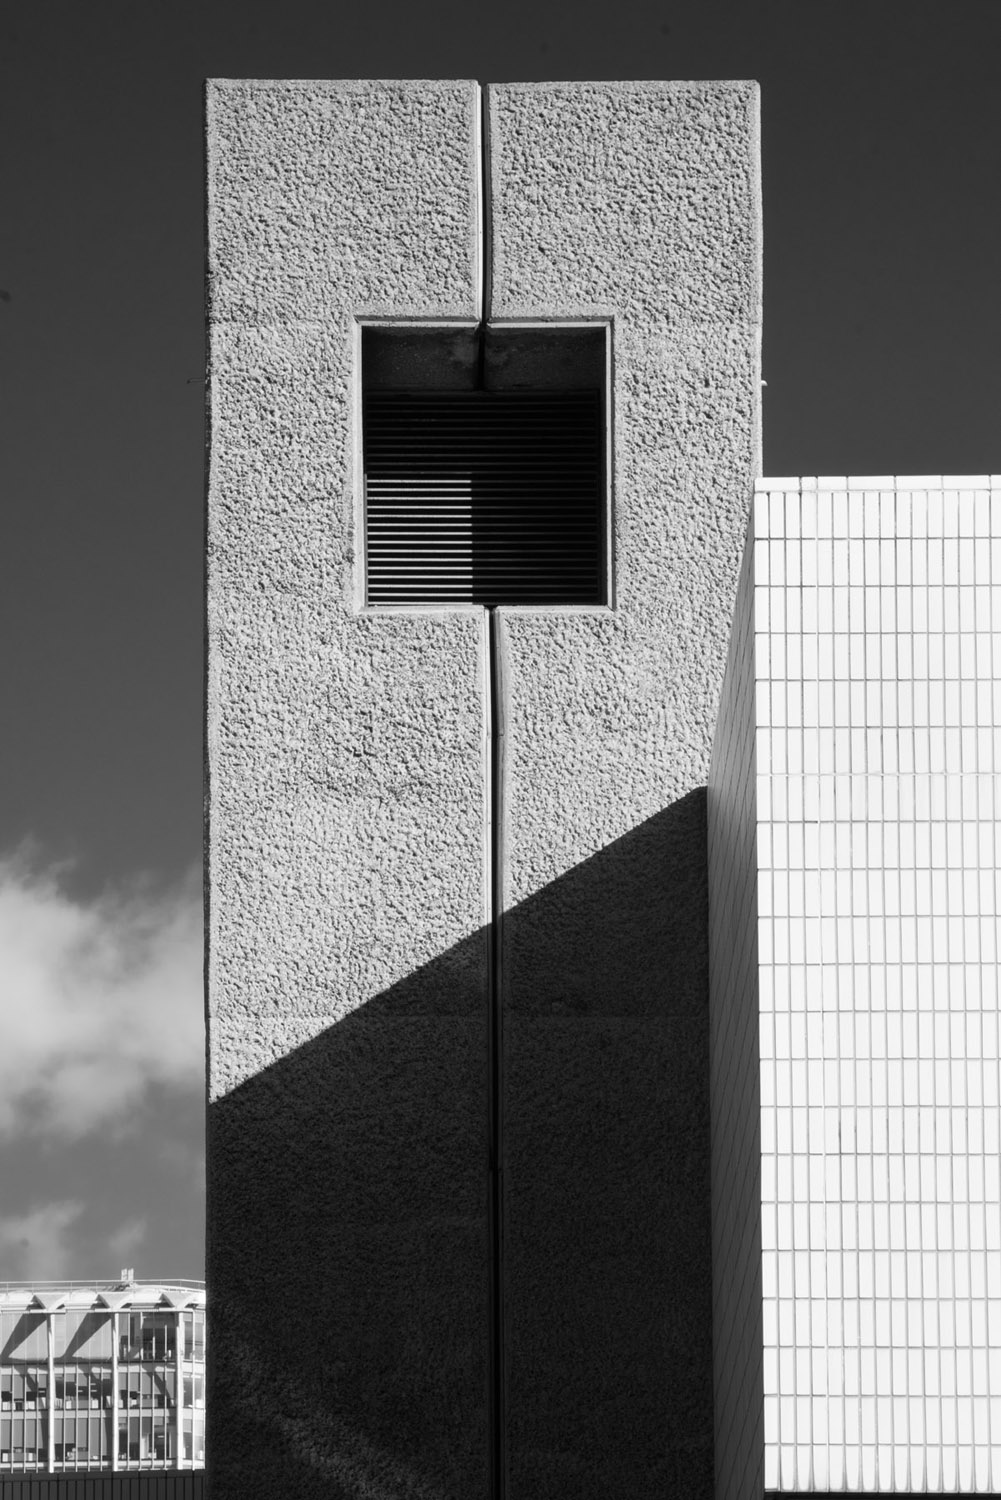 Barbican Estate by Architectural Photographer Joas Souza